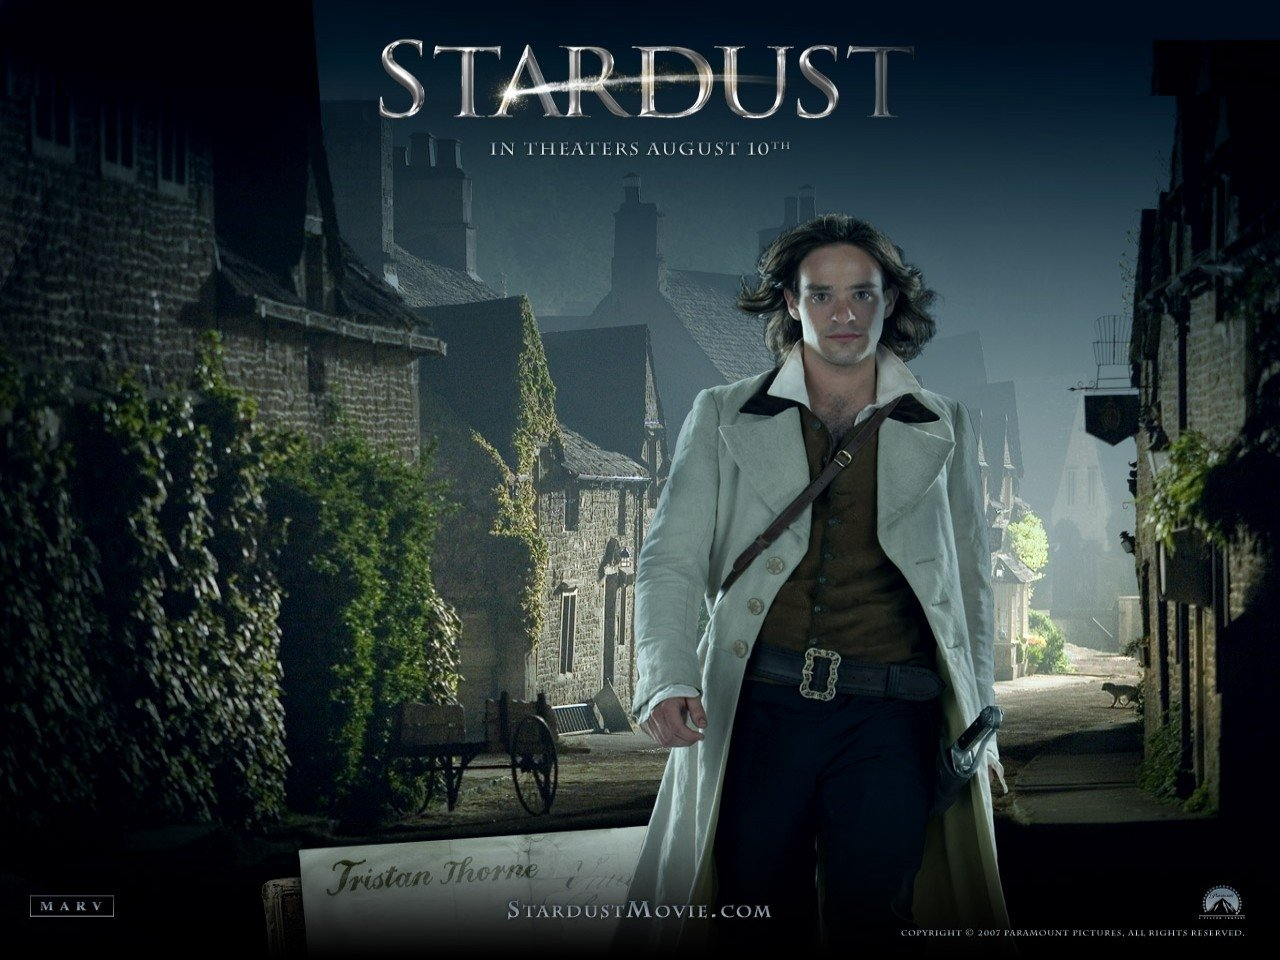 Wallpaper per il desktop del film Stardust